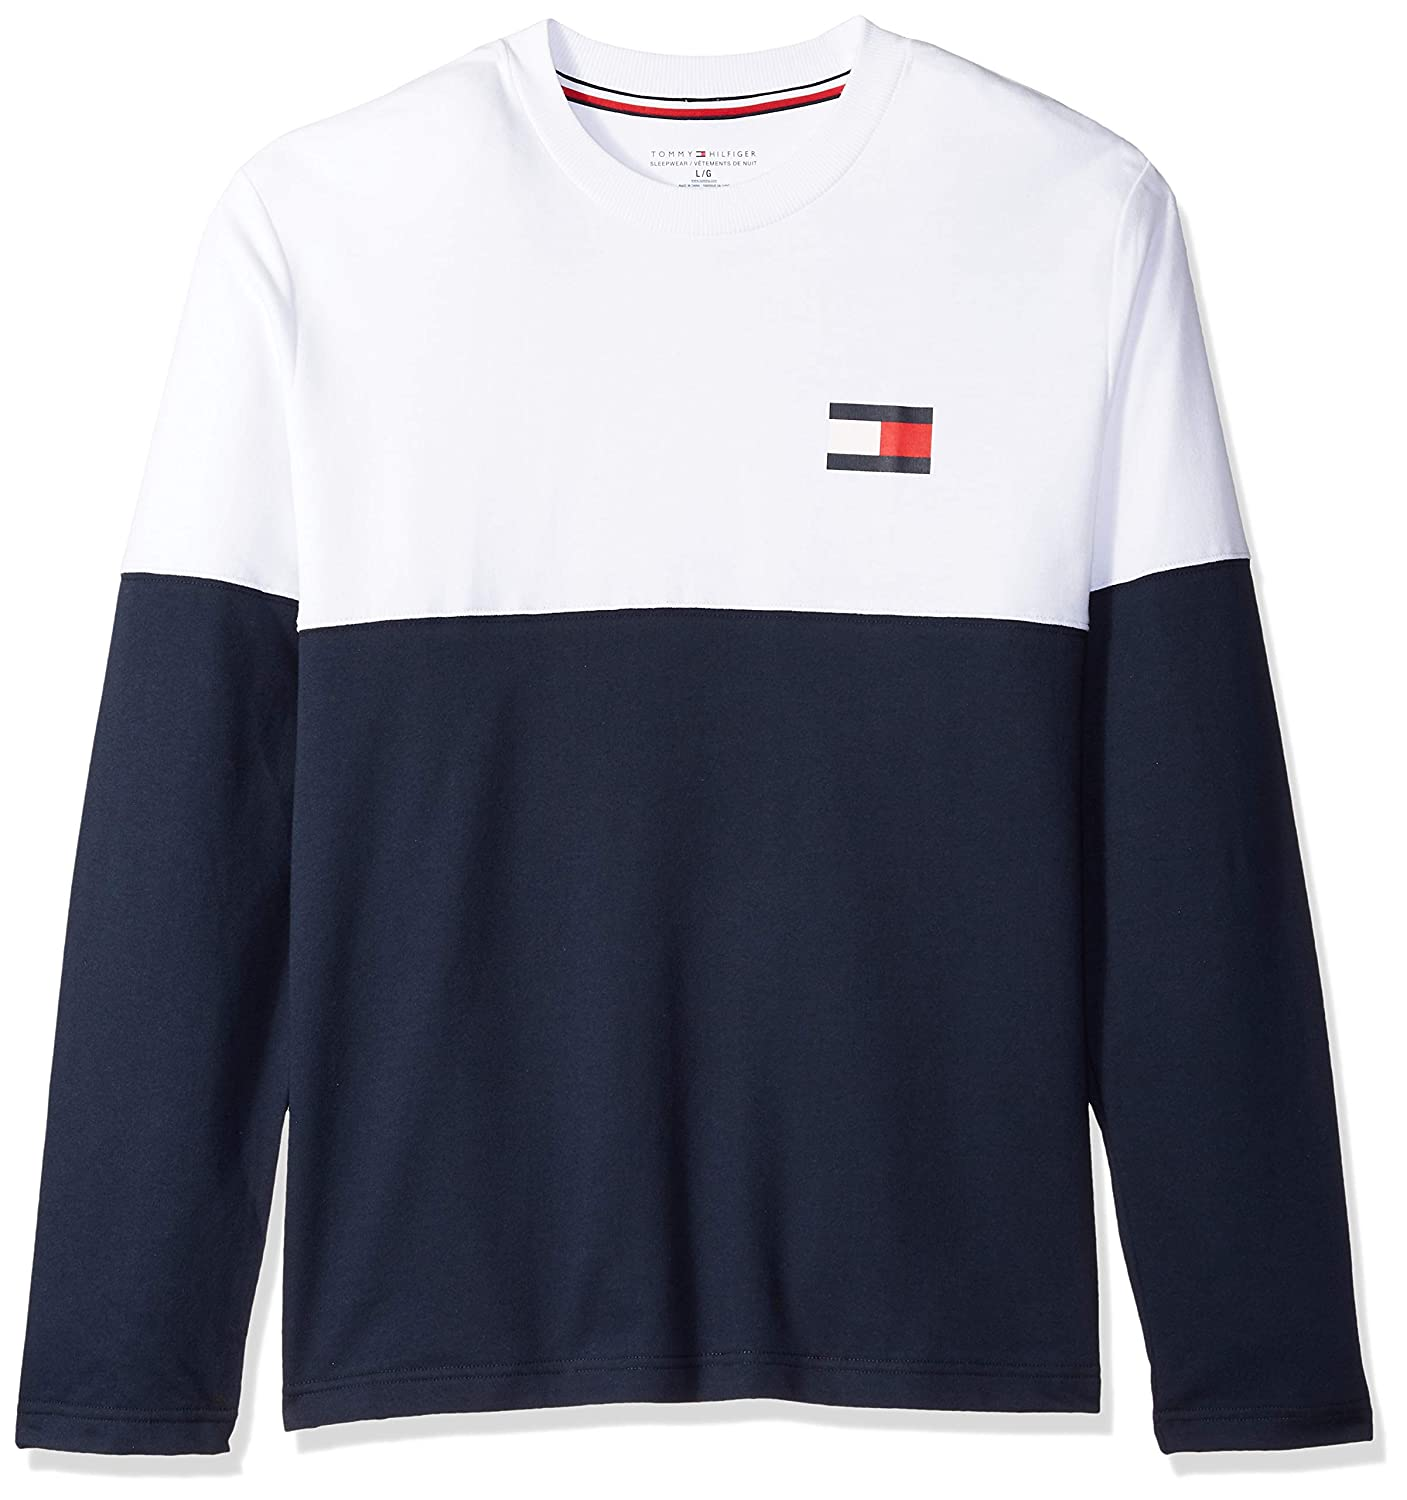 Tommy Hilfiger Men's Modern Essentials French Terry Long Sleeve Crew Neck, 09T3320